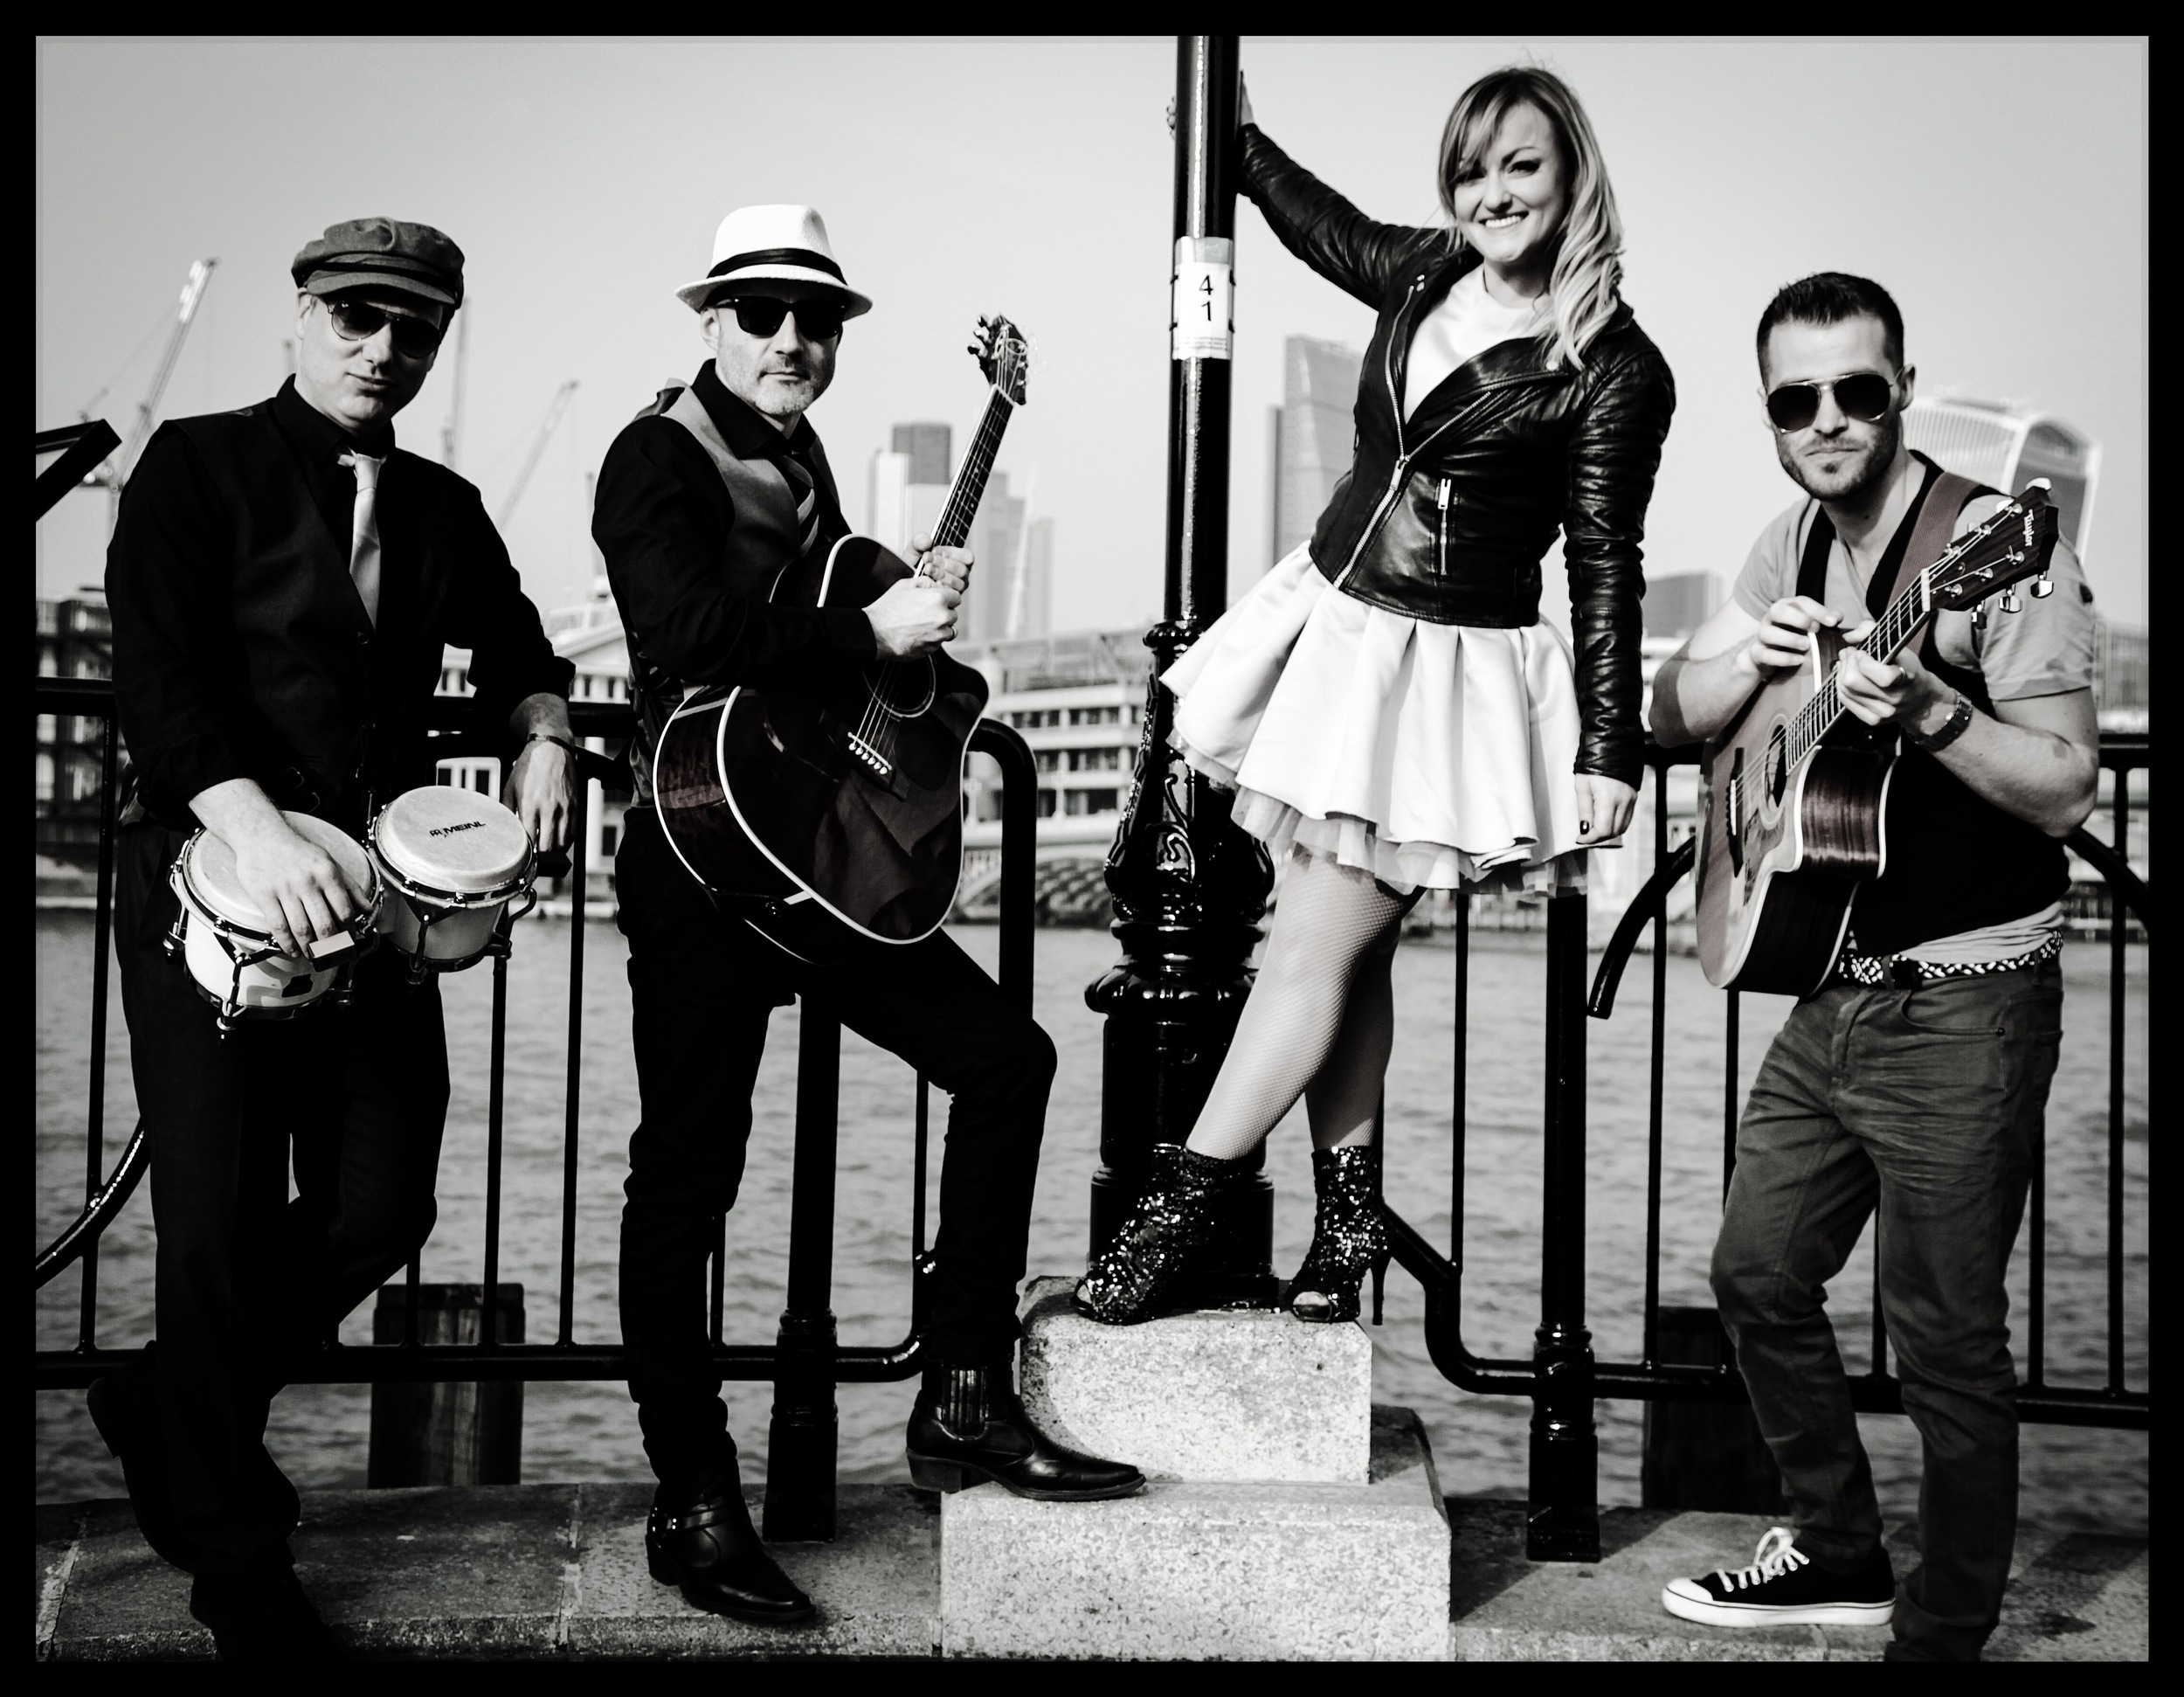 belle and the boots - acoustic wandering party band